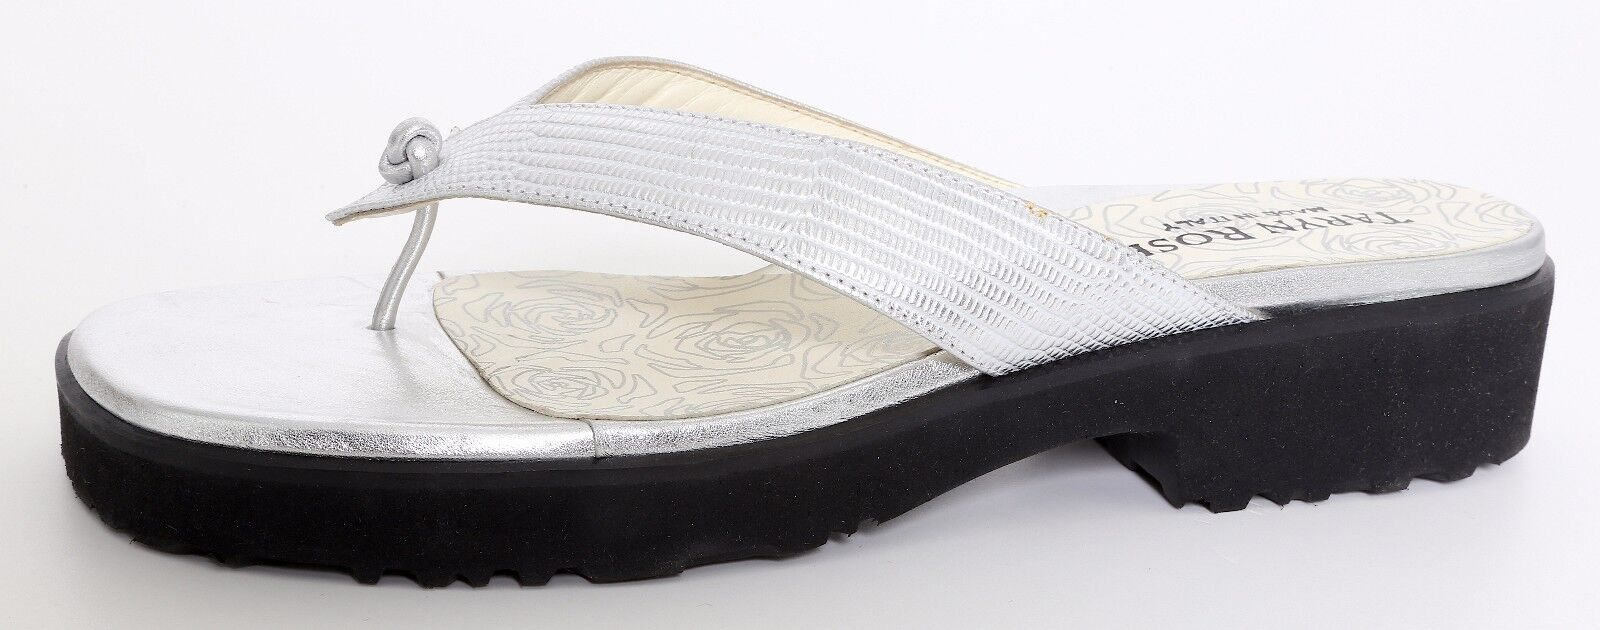 Taryn Rose Tyra Crinkle Metallic Leather Sandals argent femmes Sz 41.5 EUR 6497